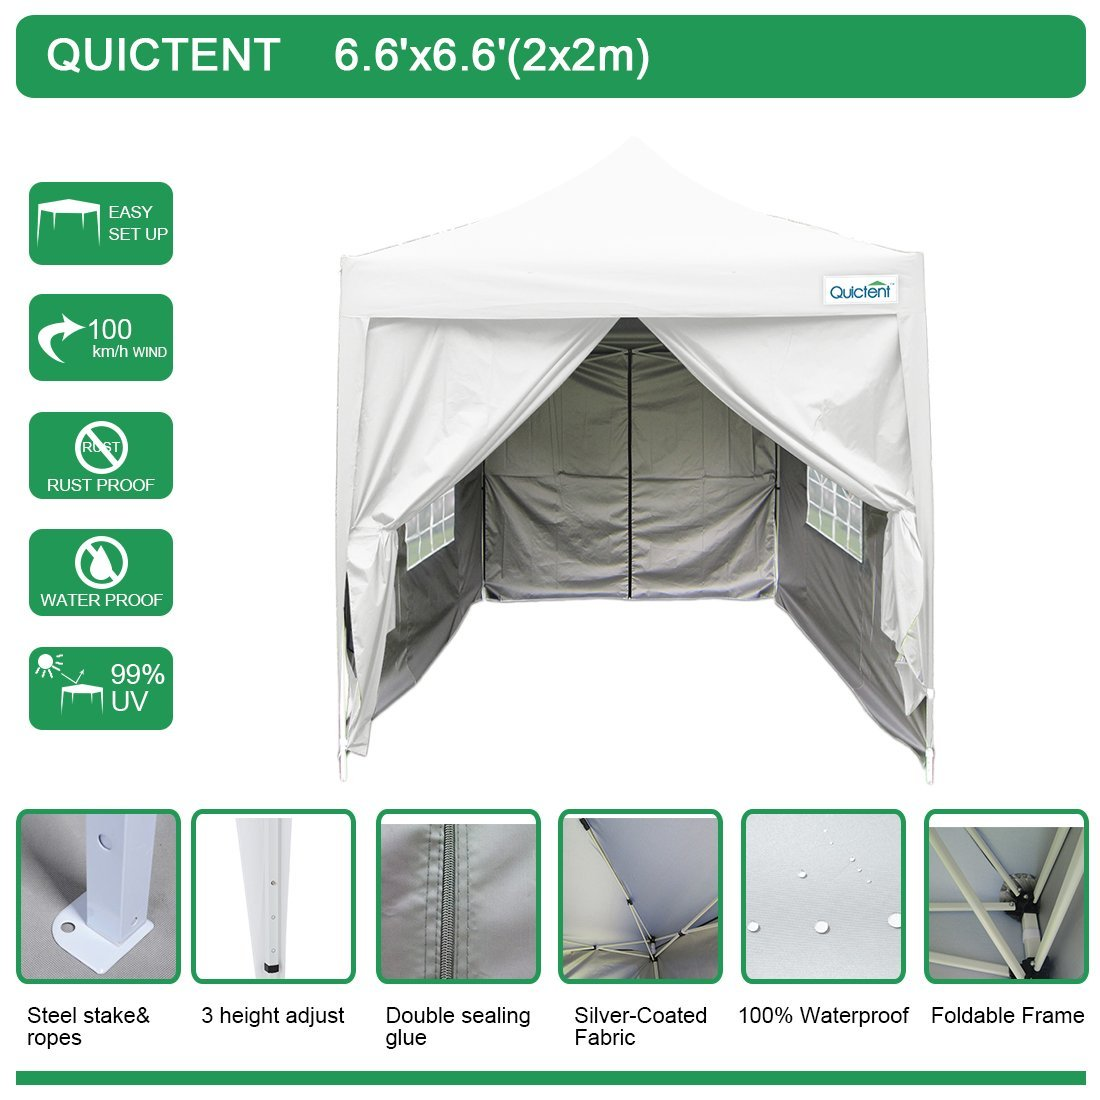 Quictent Silvox 6.6' x 6.6' EZ Pop Up Canopy Portable Waterproof Gazebo Pyramid Roof Beige by